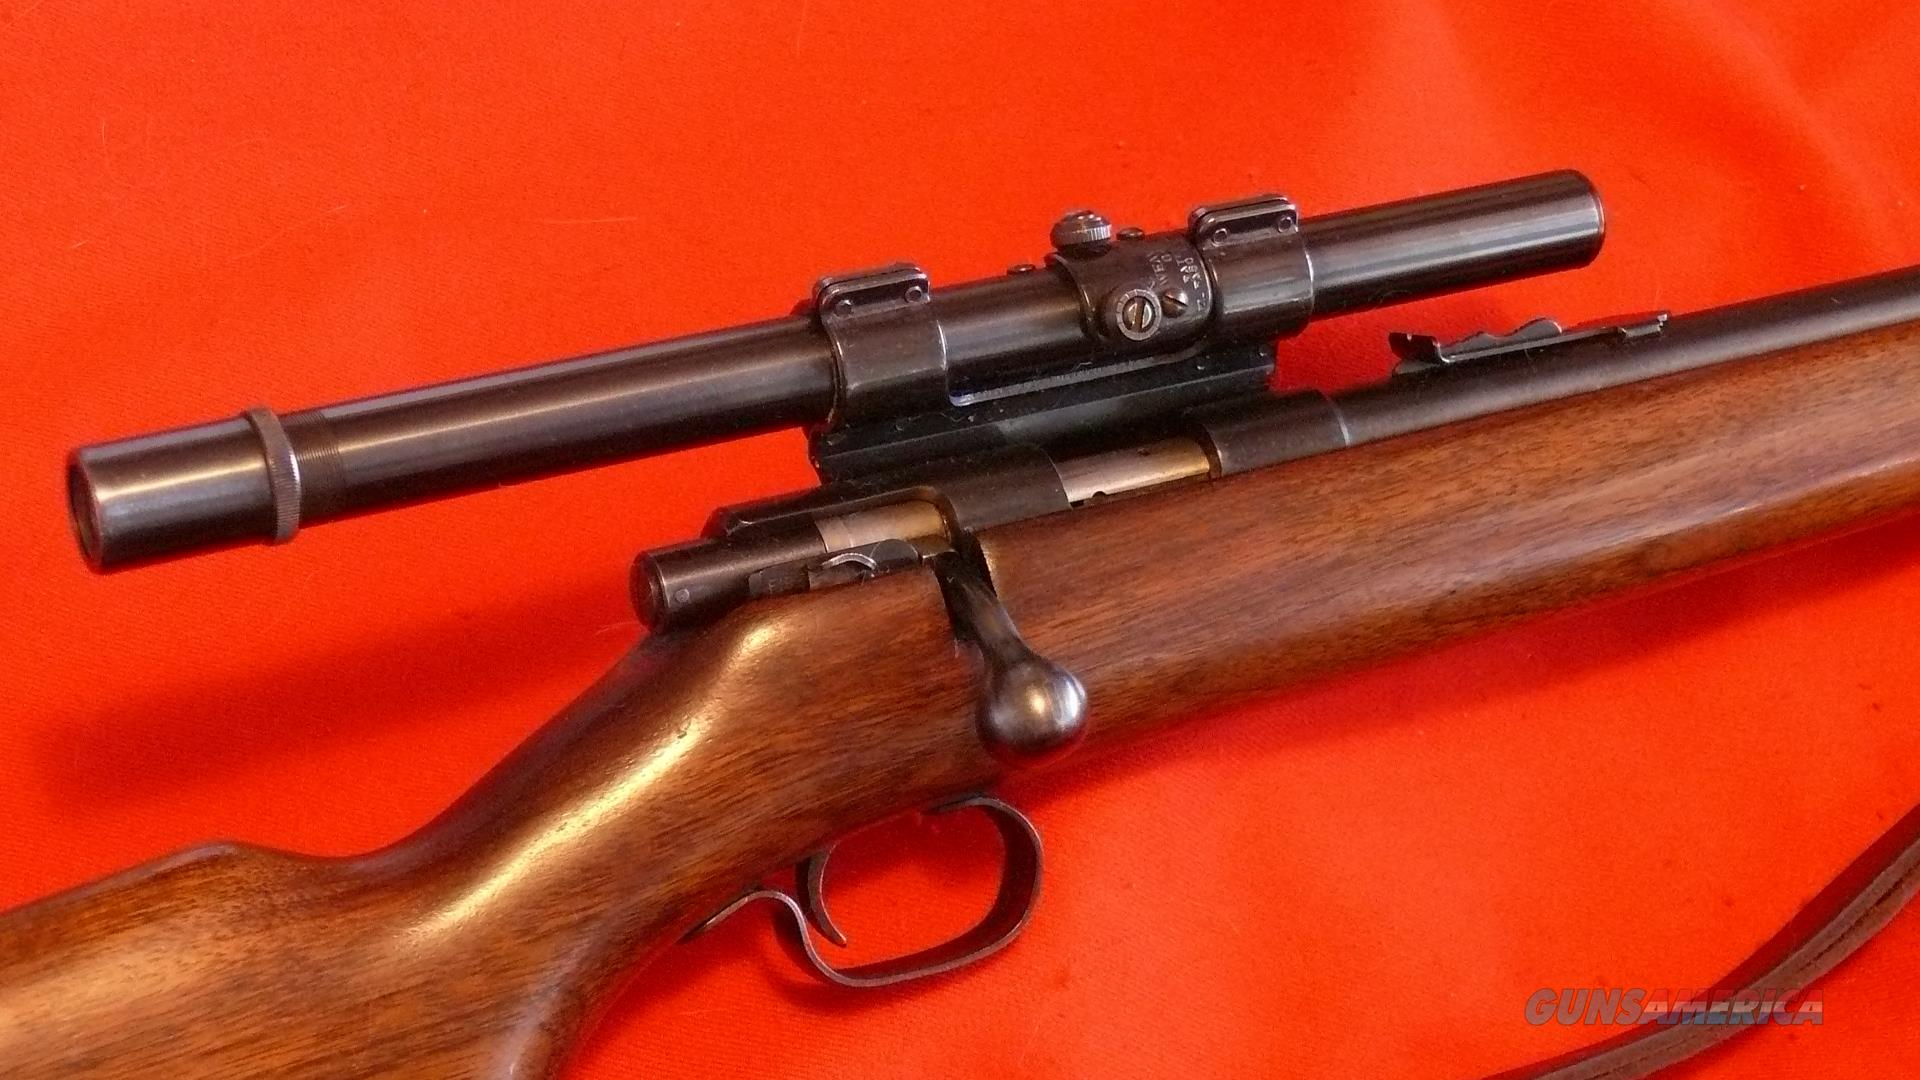 Winchester Model 72 Near Mint Weaver G4 Scope   Guns > Rifles > Winchester Rifles - Modern Bolt/Auto/Single > .22 Boys Rifles